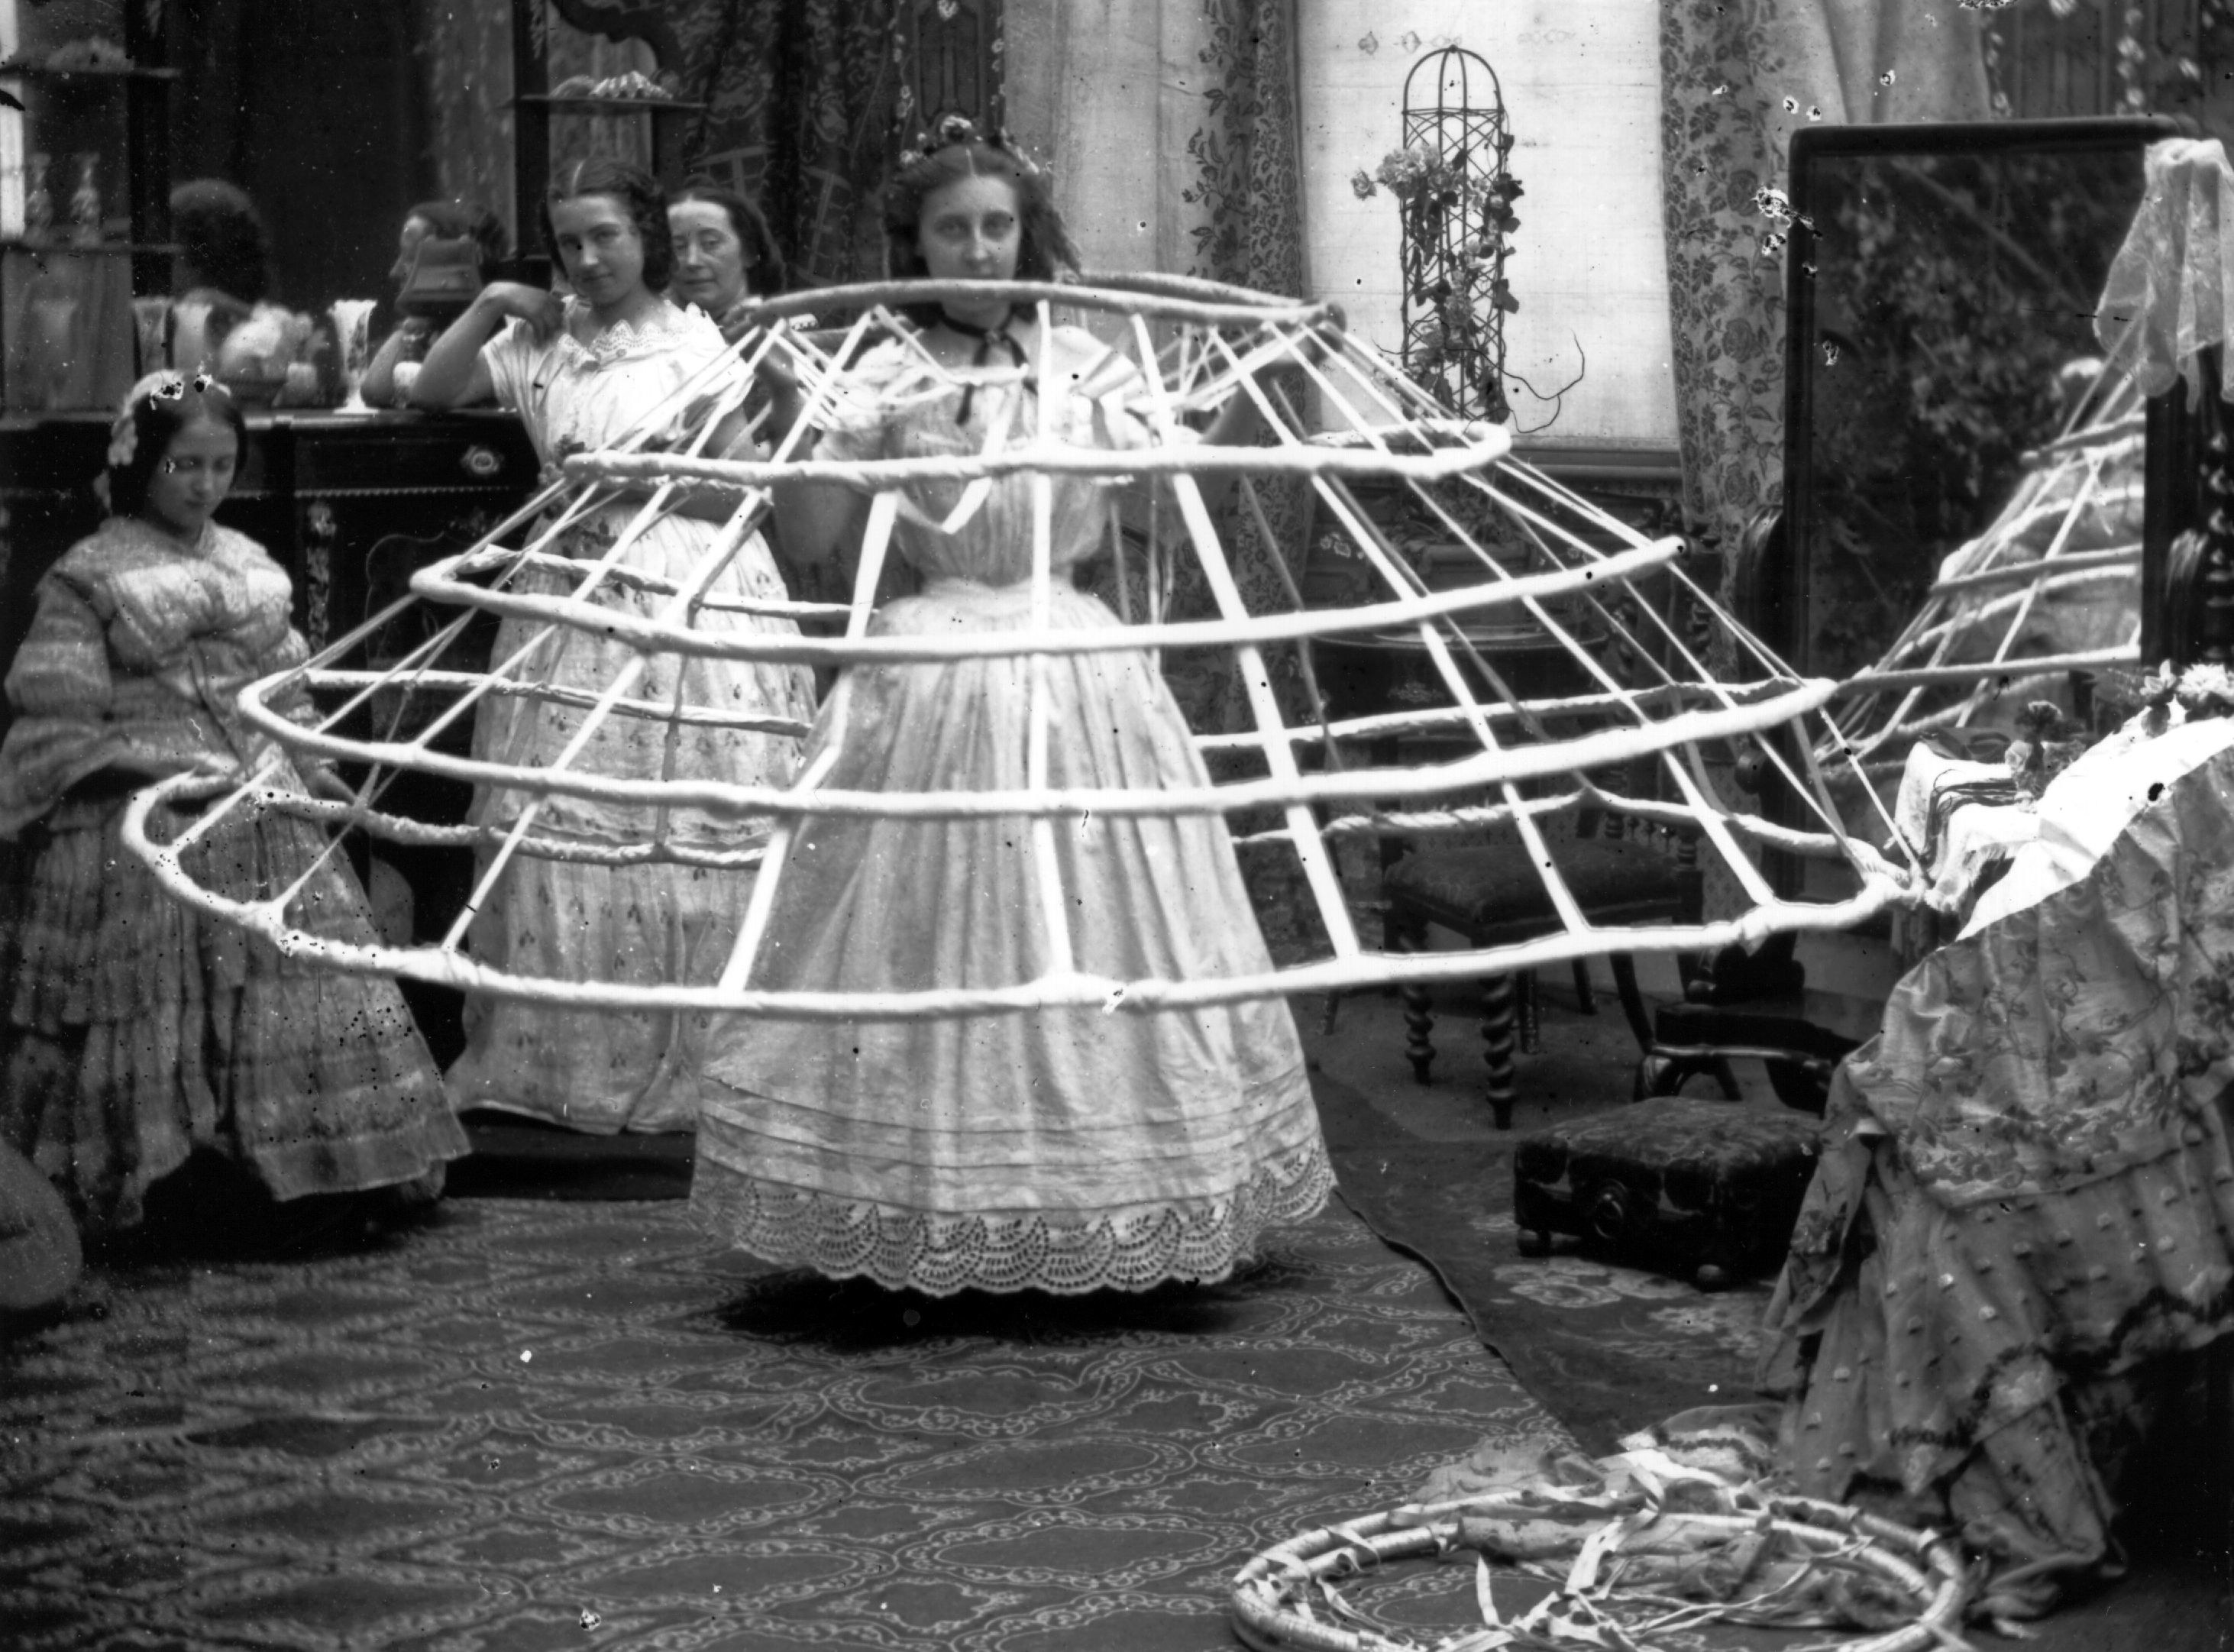 Woman holding up a large hoop skirt, known as acrinoline, that spans her height in width